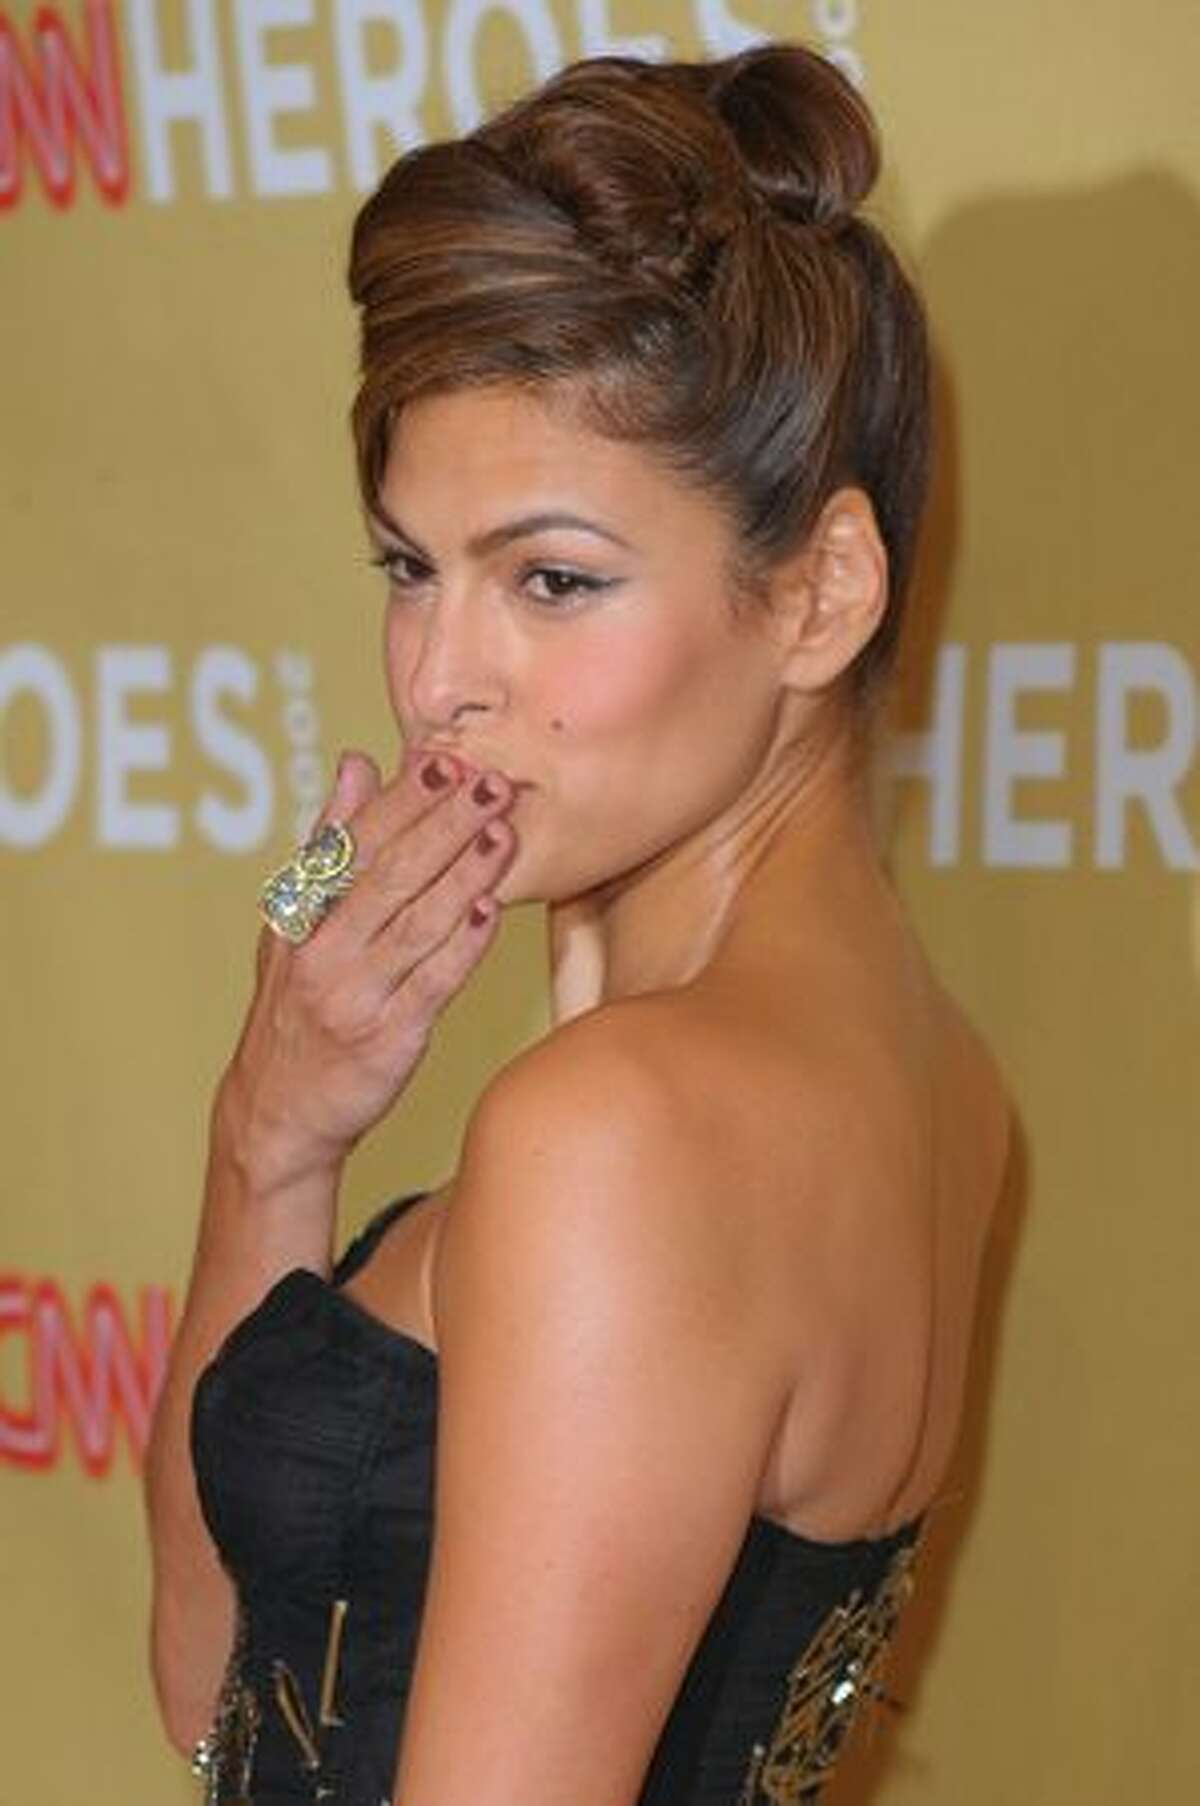 Actress Eva Mendes attends the 2009 CNN Heroes Awards held at The Kodak Theatre on Saturday in Hollywood, California.